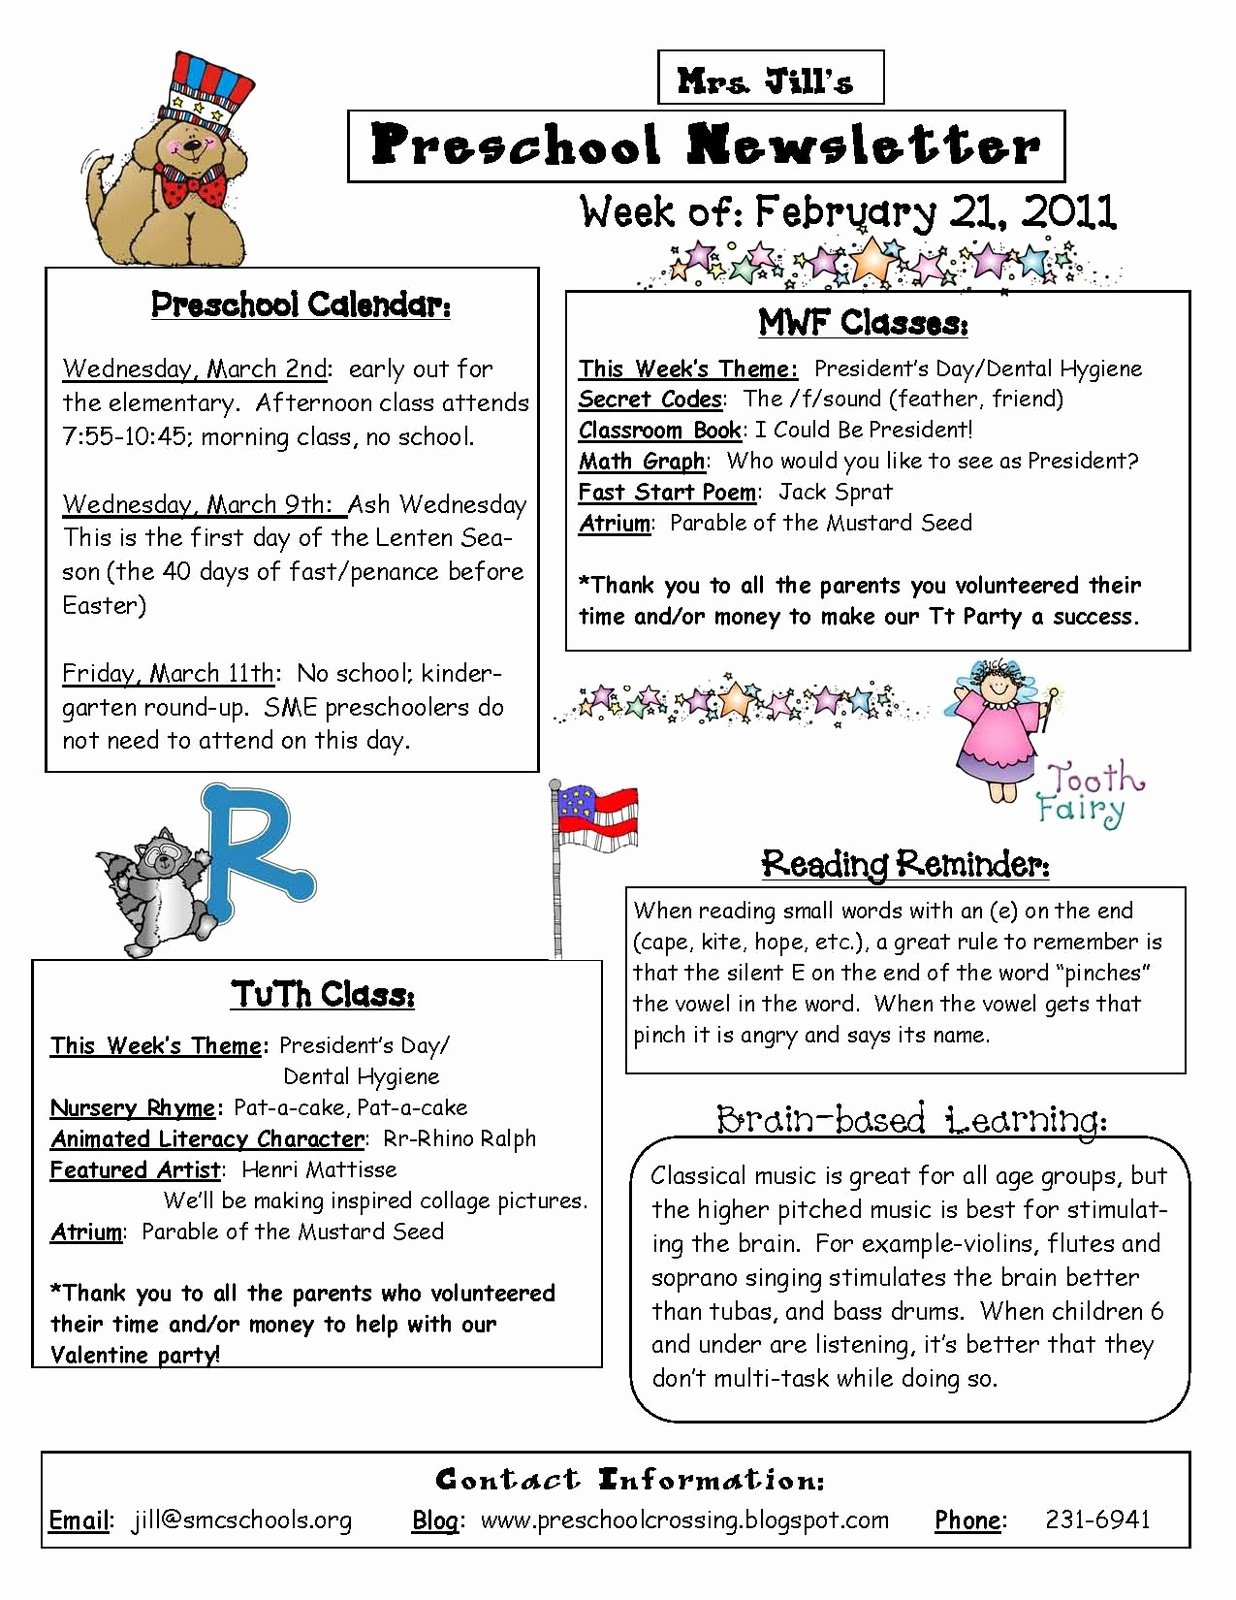 Newsletter for Preschool Parents Template Beautiful Preschool Crossing Here is An Example Of My Weekly Newsletter